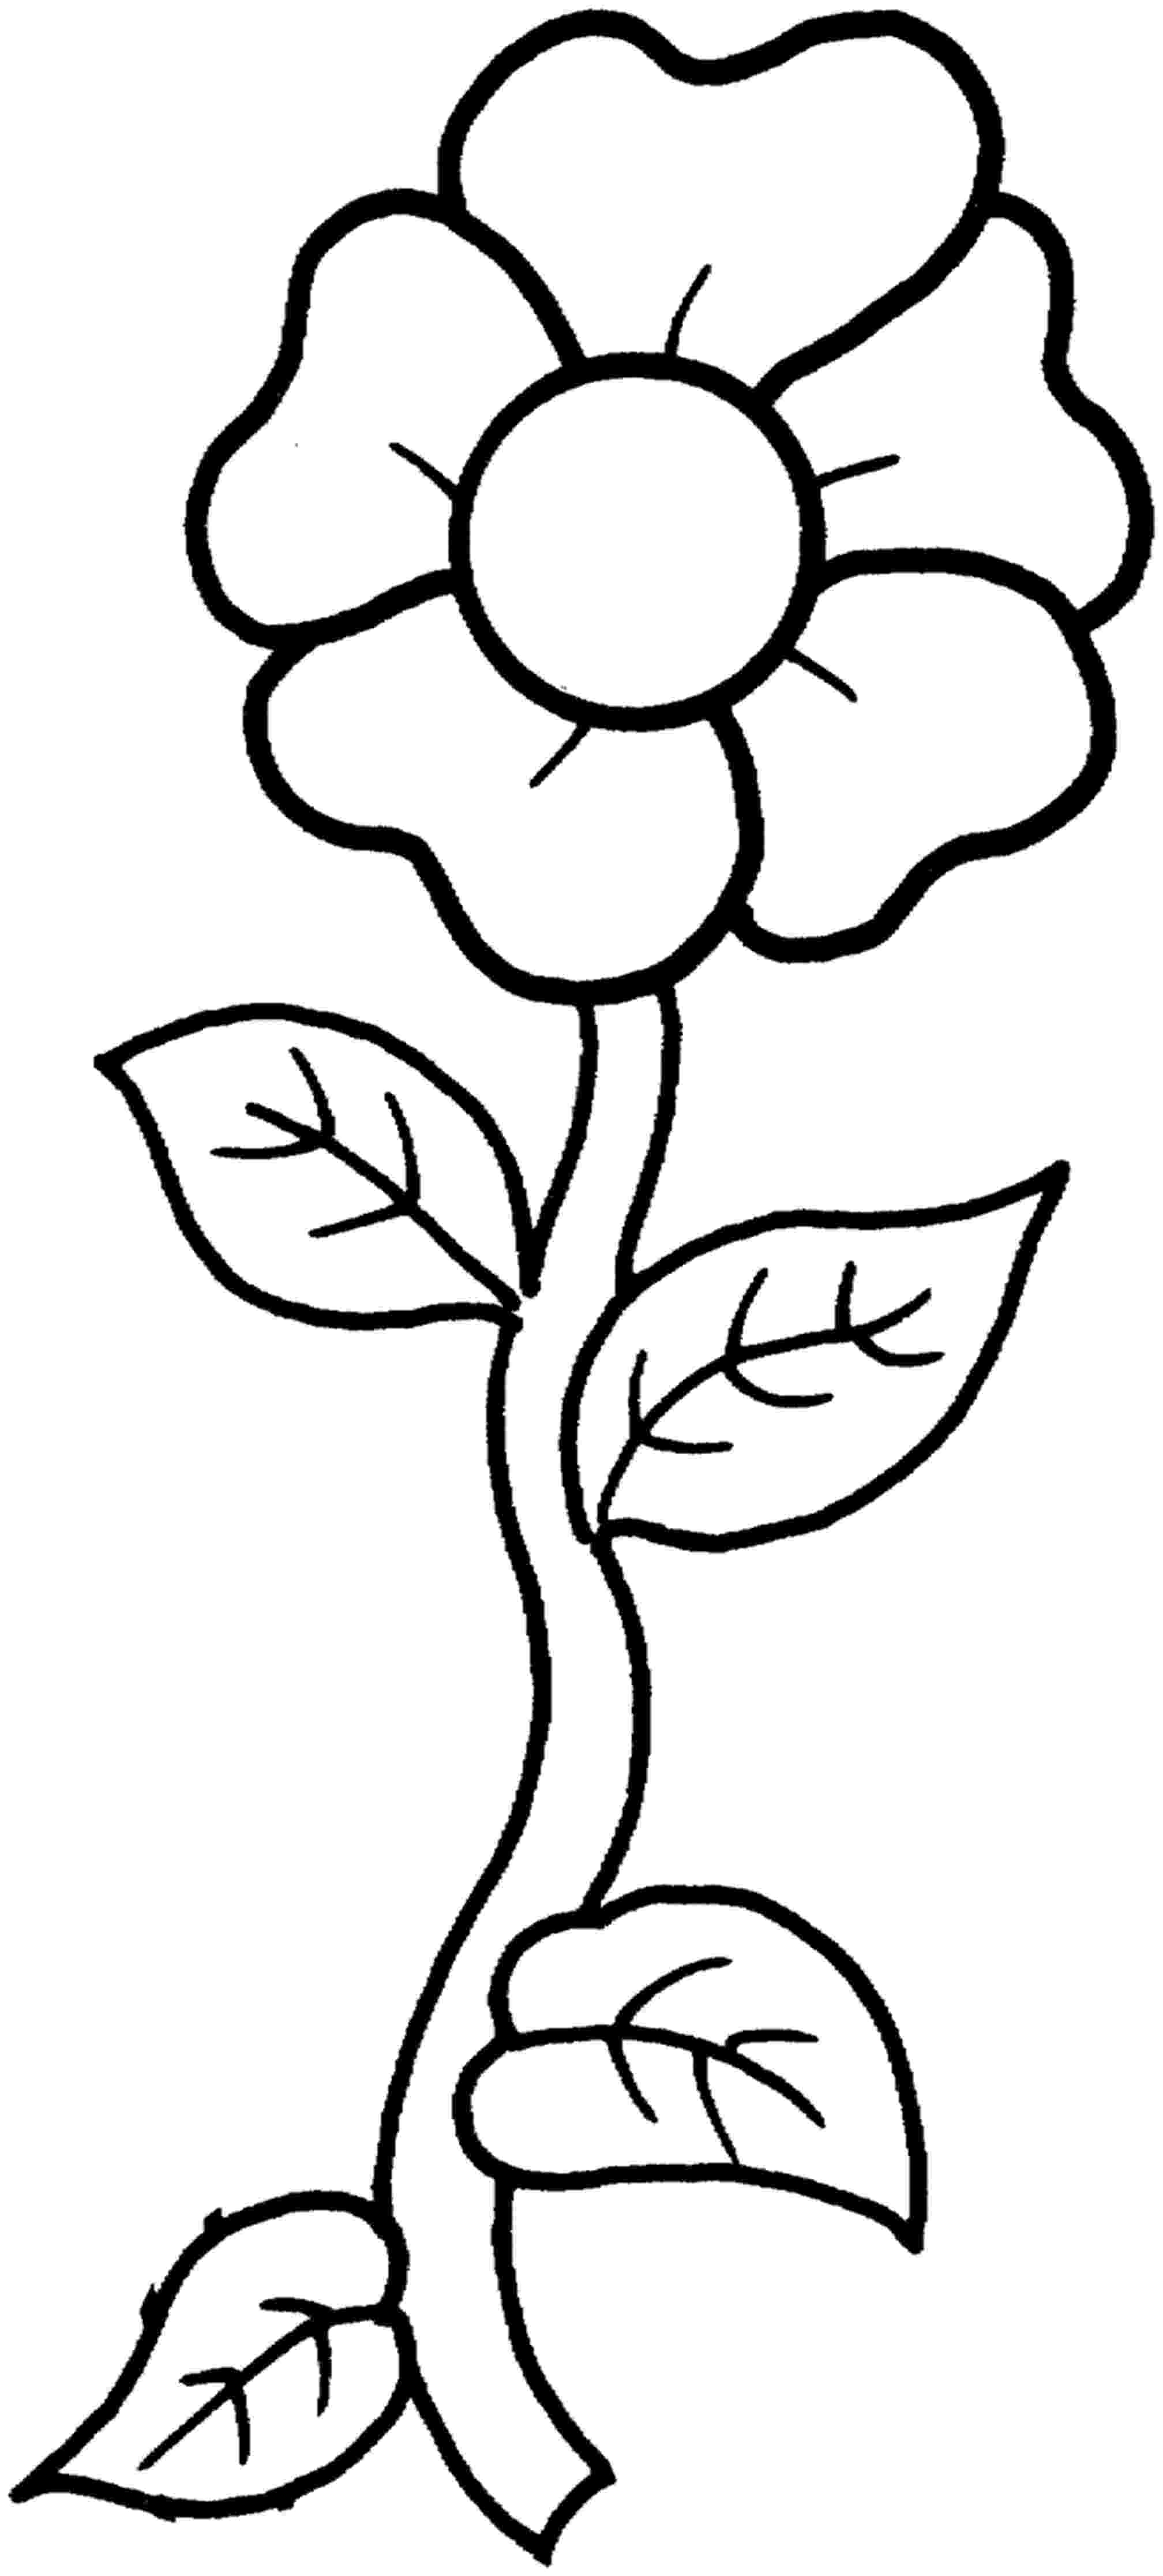 printable flower patterns to color flower template free printable google search molde color to printable patterns flower